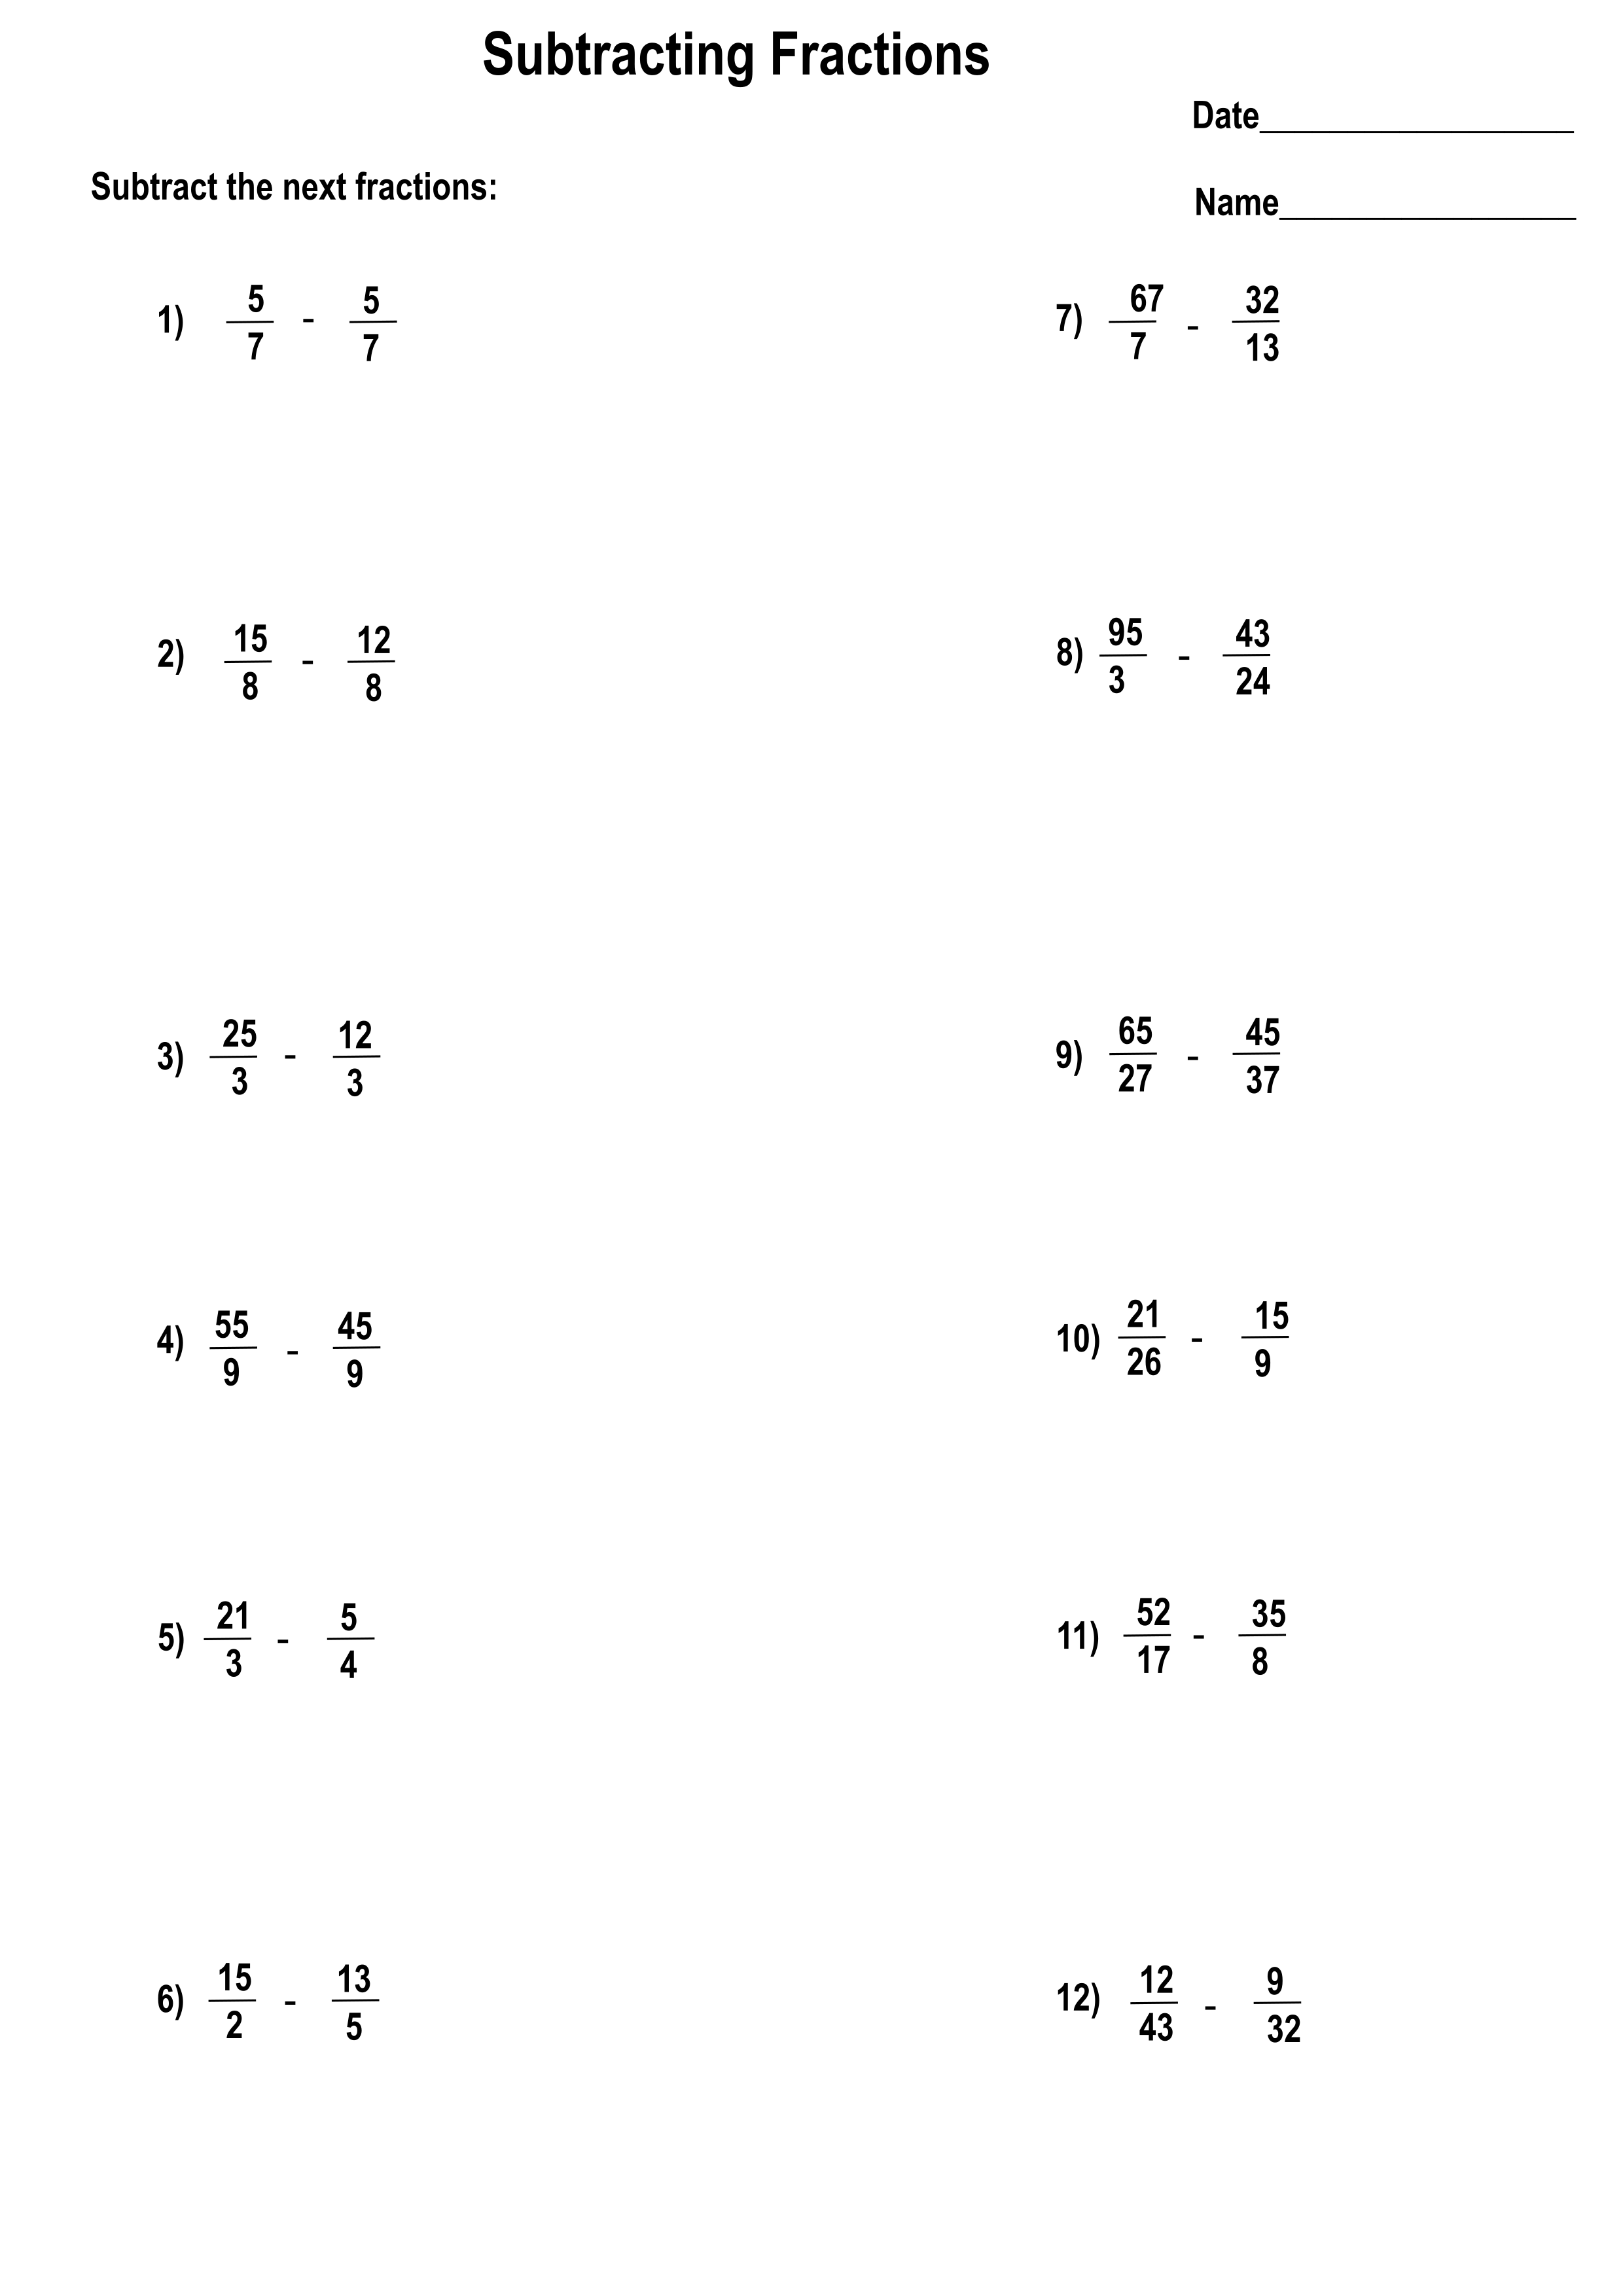 medium resolution of Printable addition fractions worksheets with answers - Printerfriend.ly